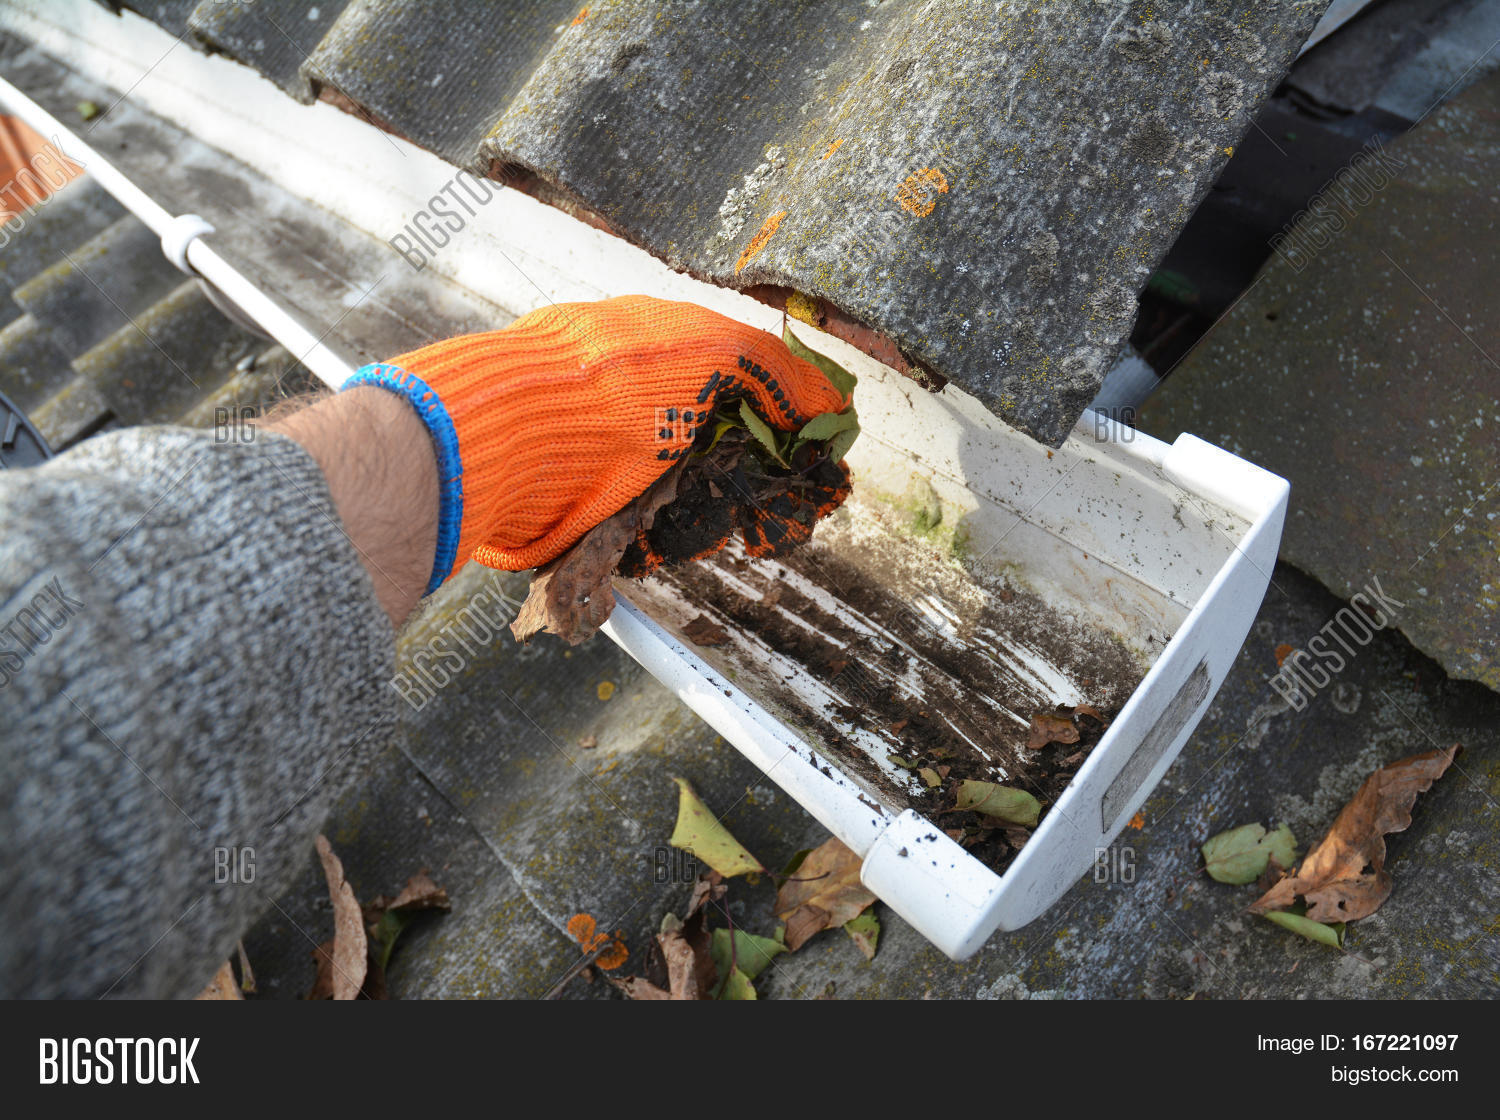 Rain Gutter Cleaning Image Amp Photo Free Trial Bigstock